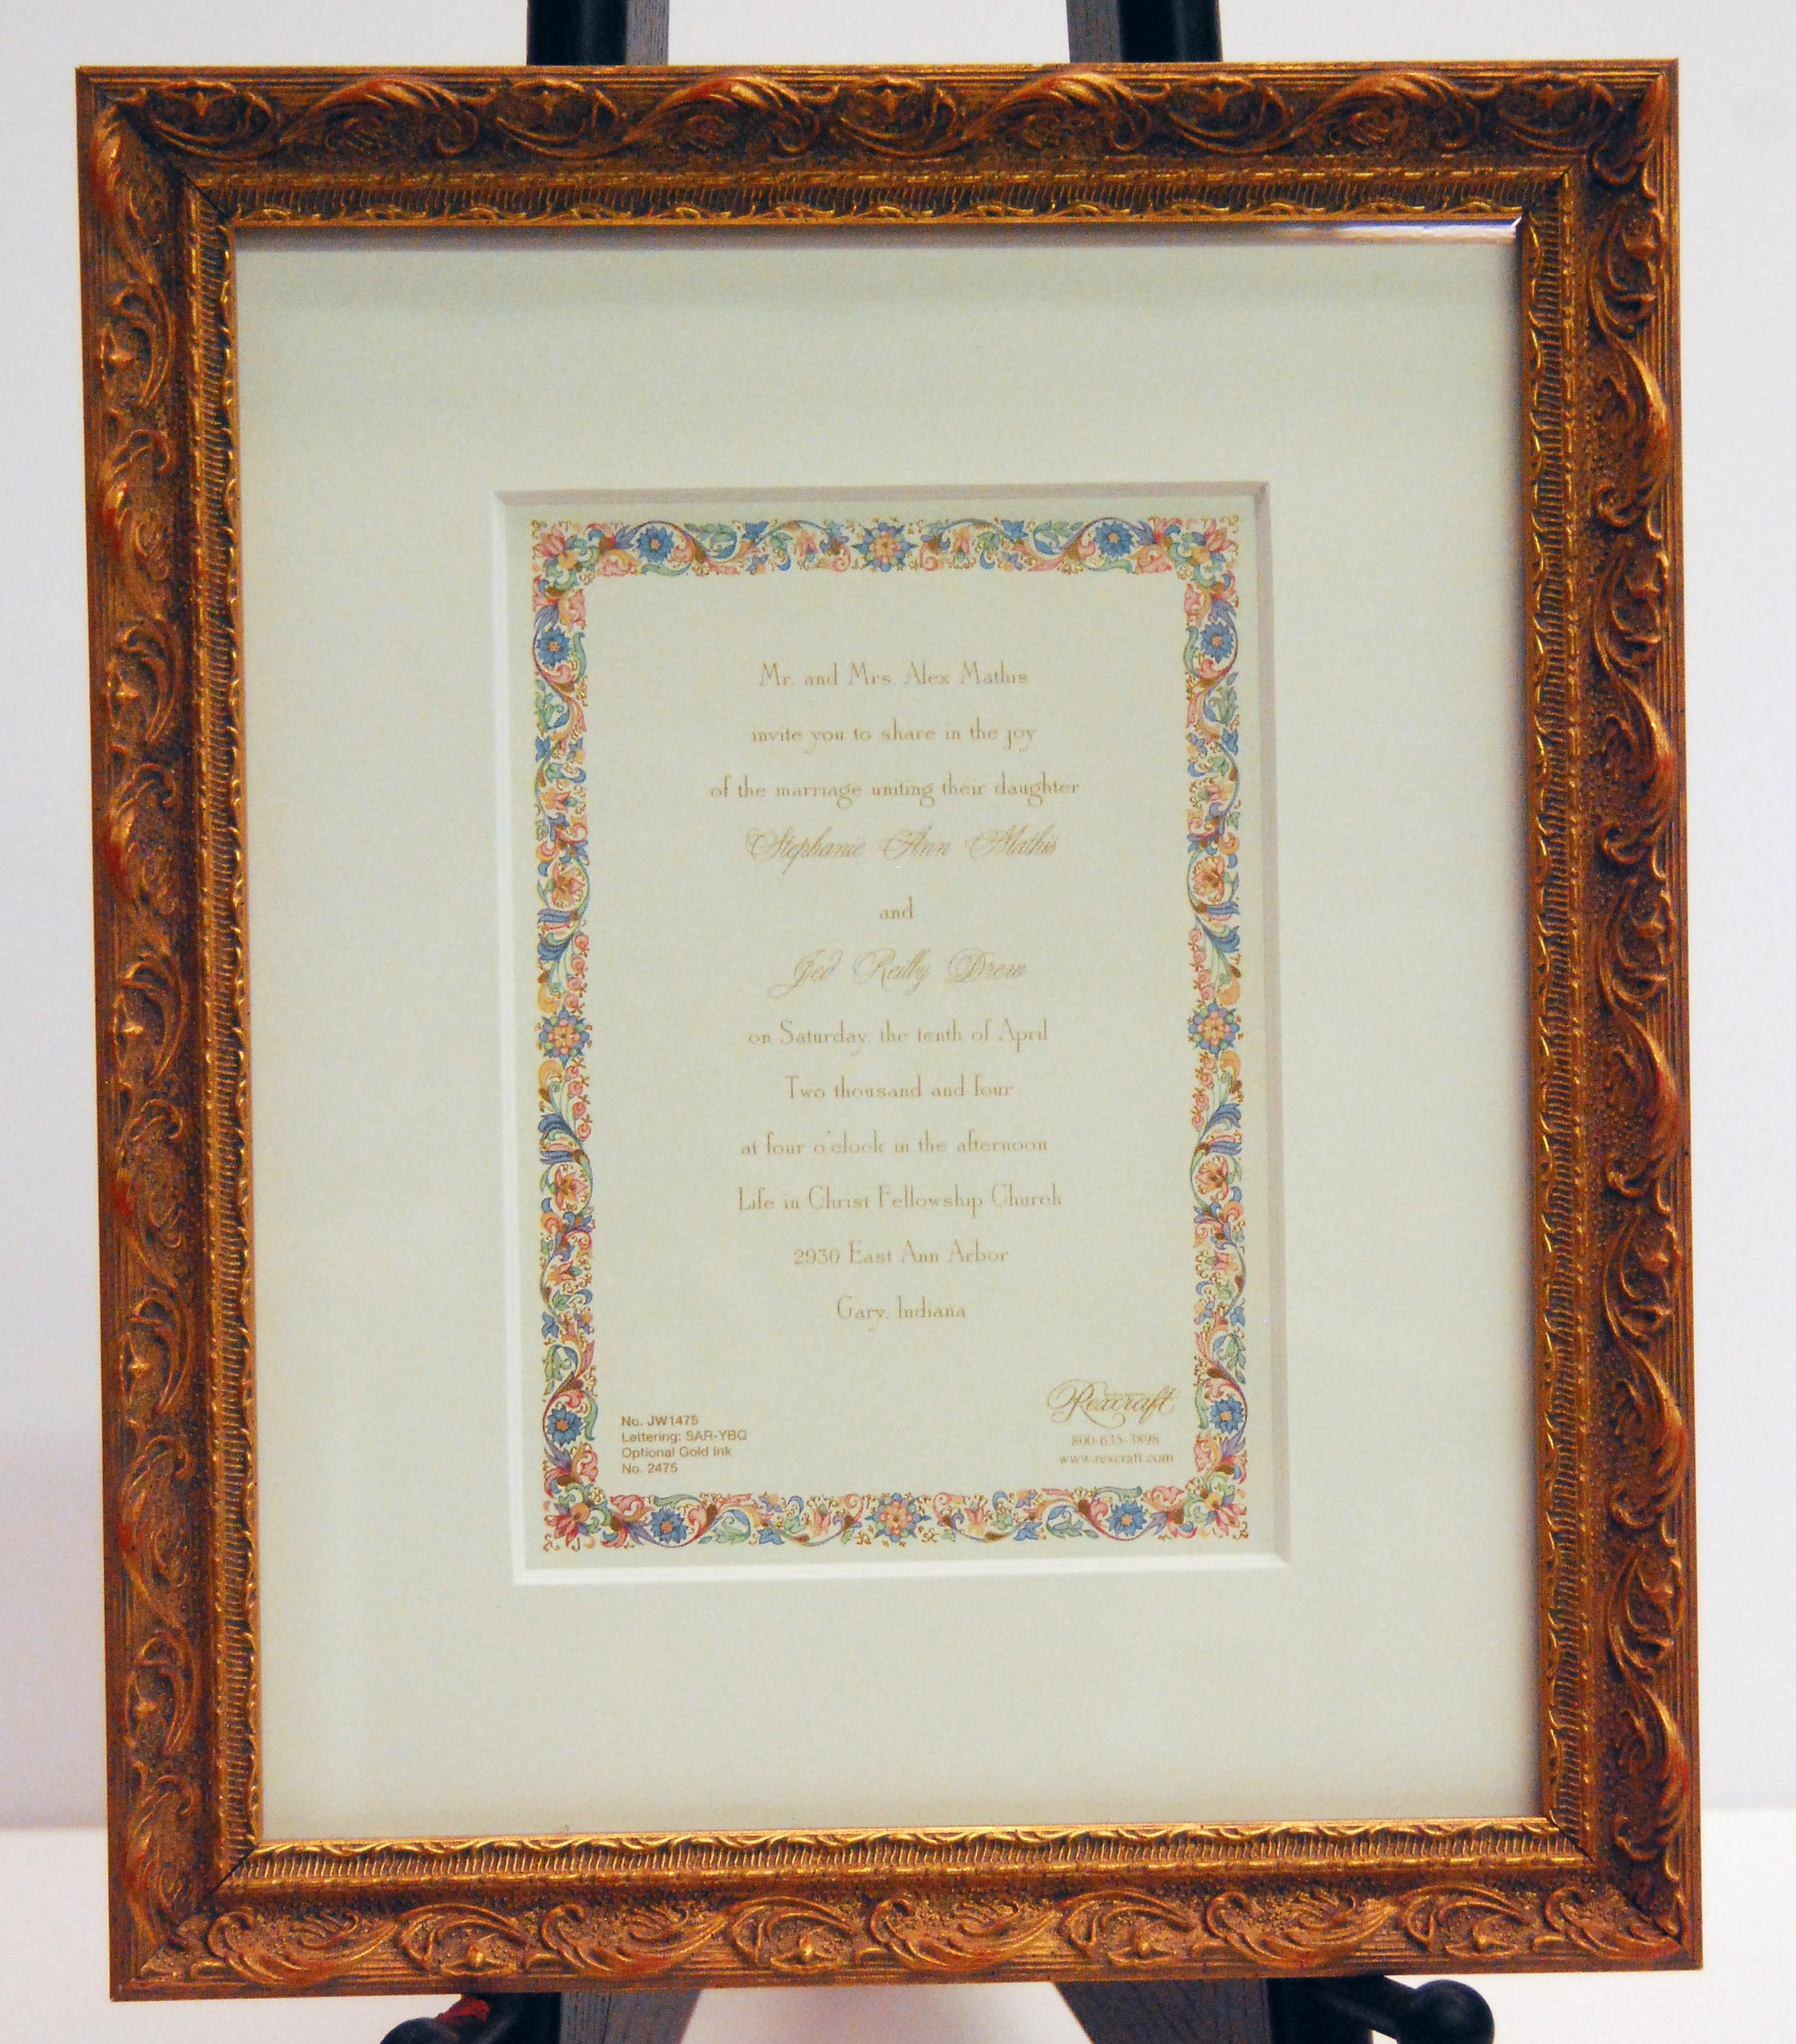 wedding invitation in custom picture frame with several layered mattes